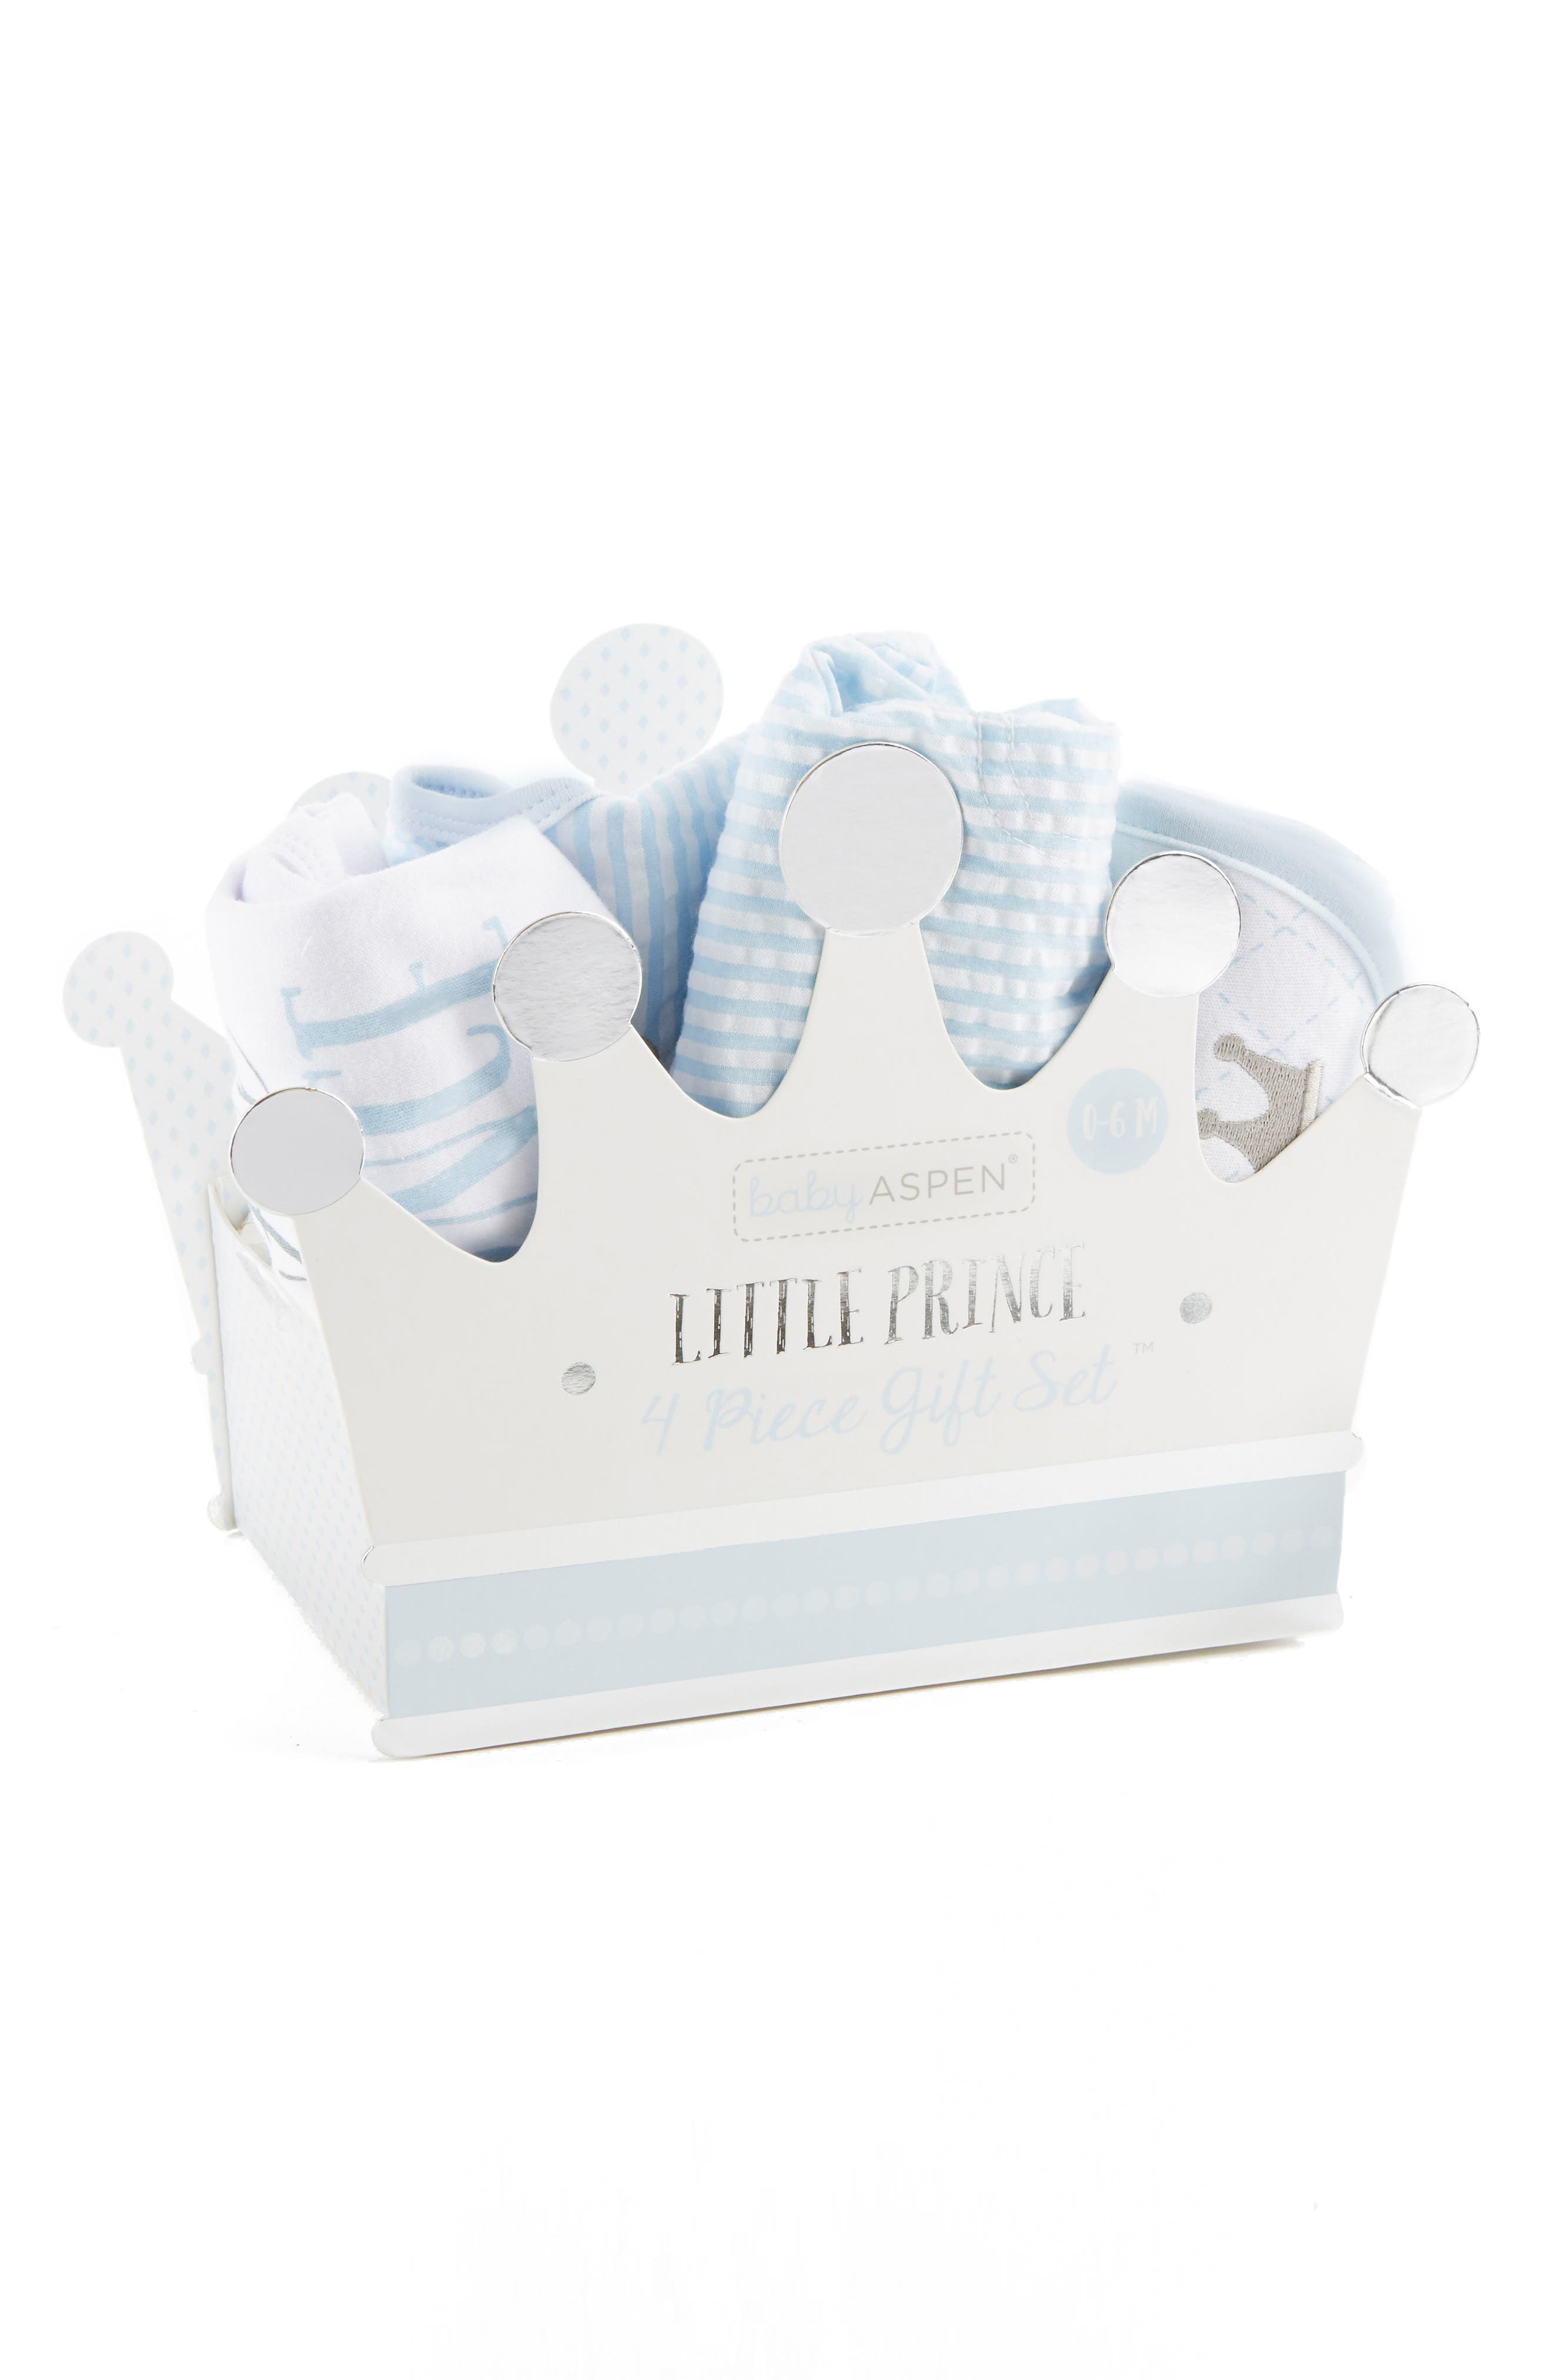 Little Prince Gift Set,                         Main,                         color,